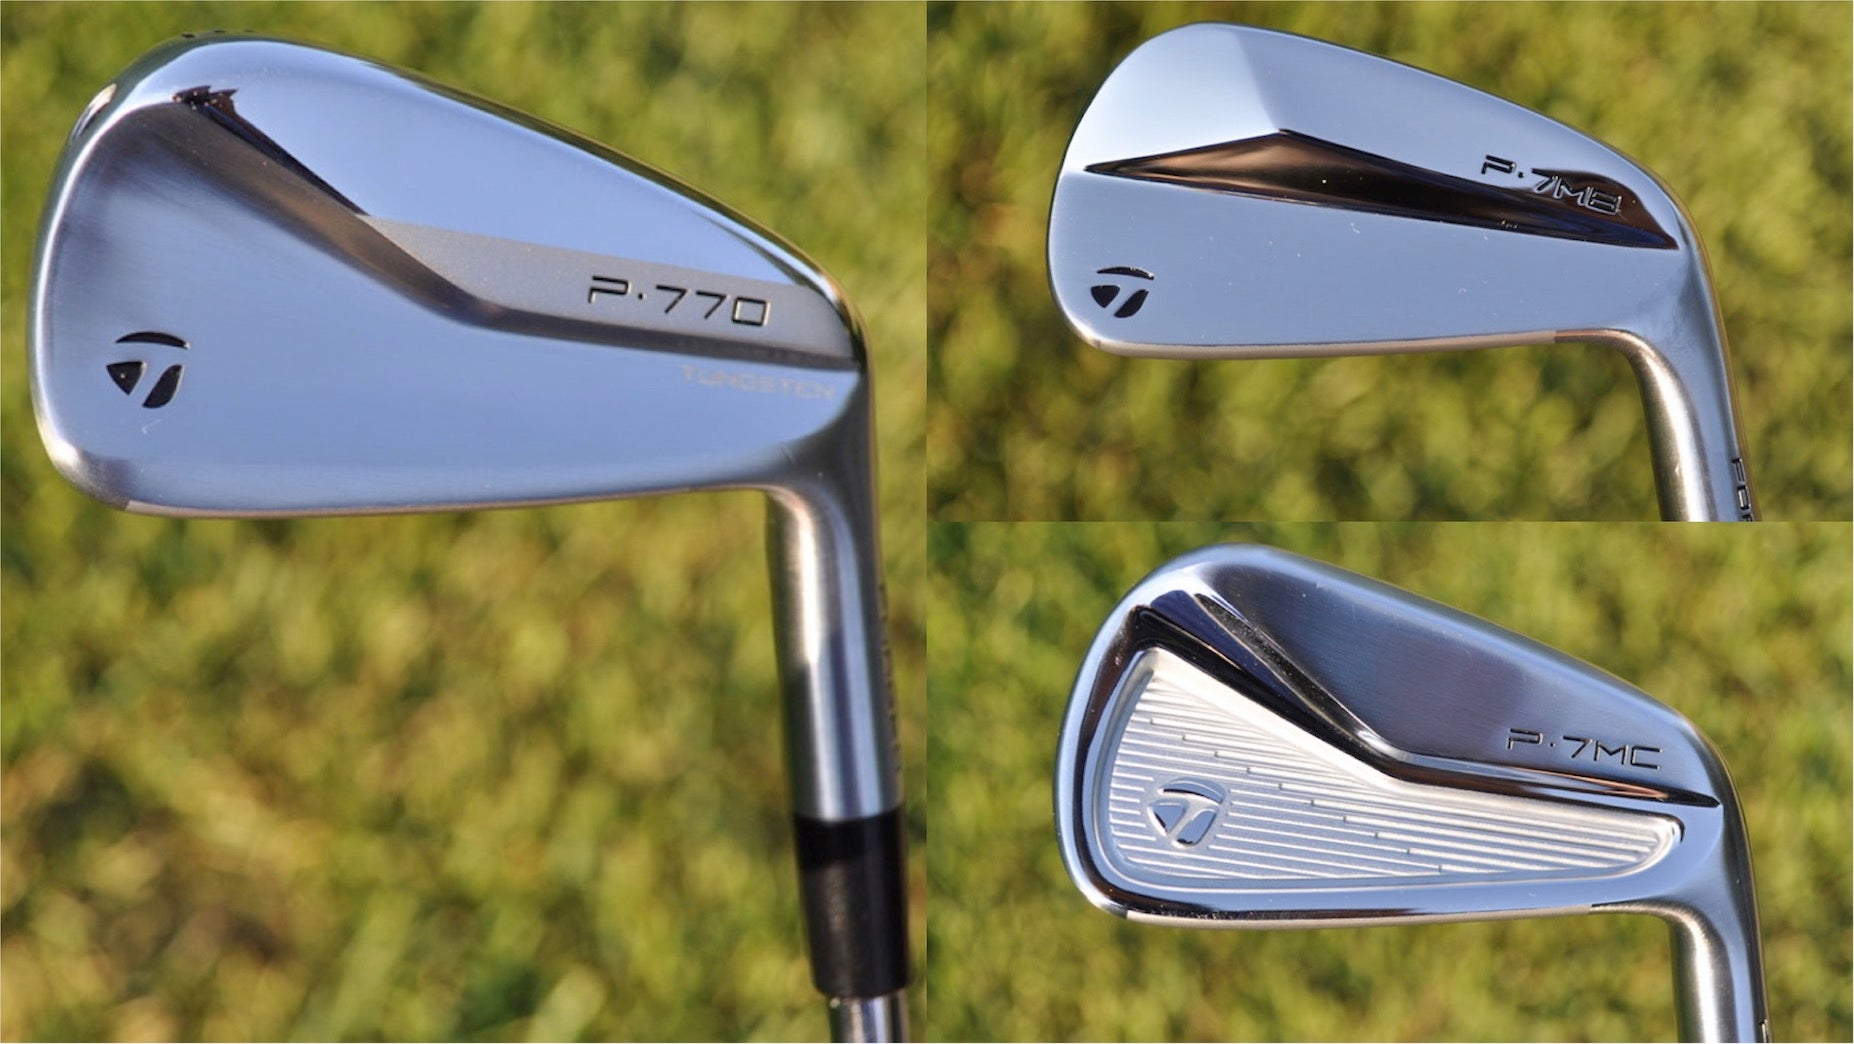 ClubTest: We put TaylorMade's new P7MB, P7MC and P770 irons to the test on a launch monitor